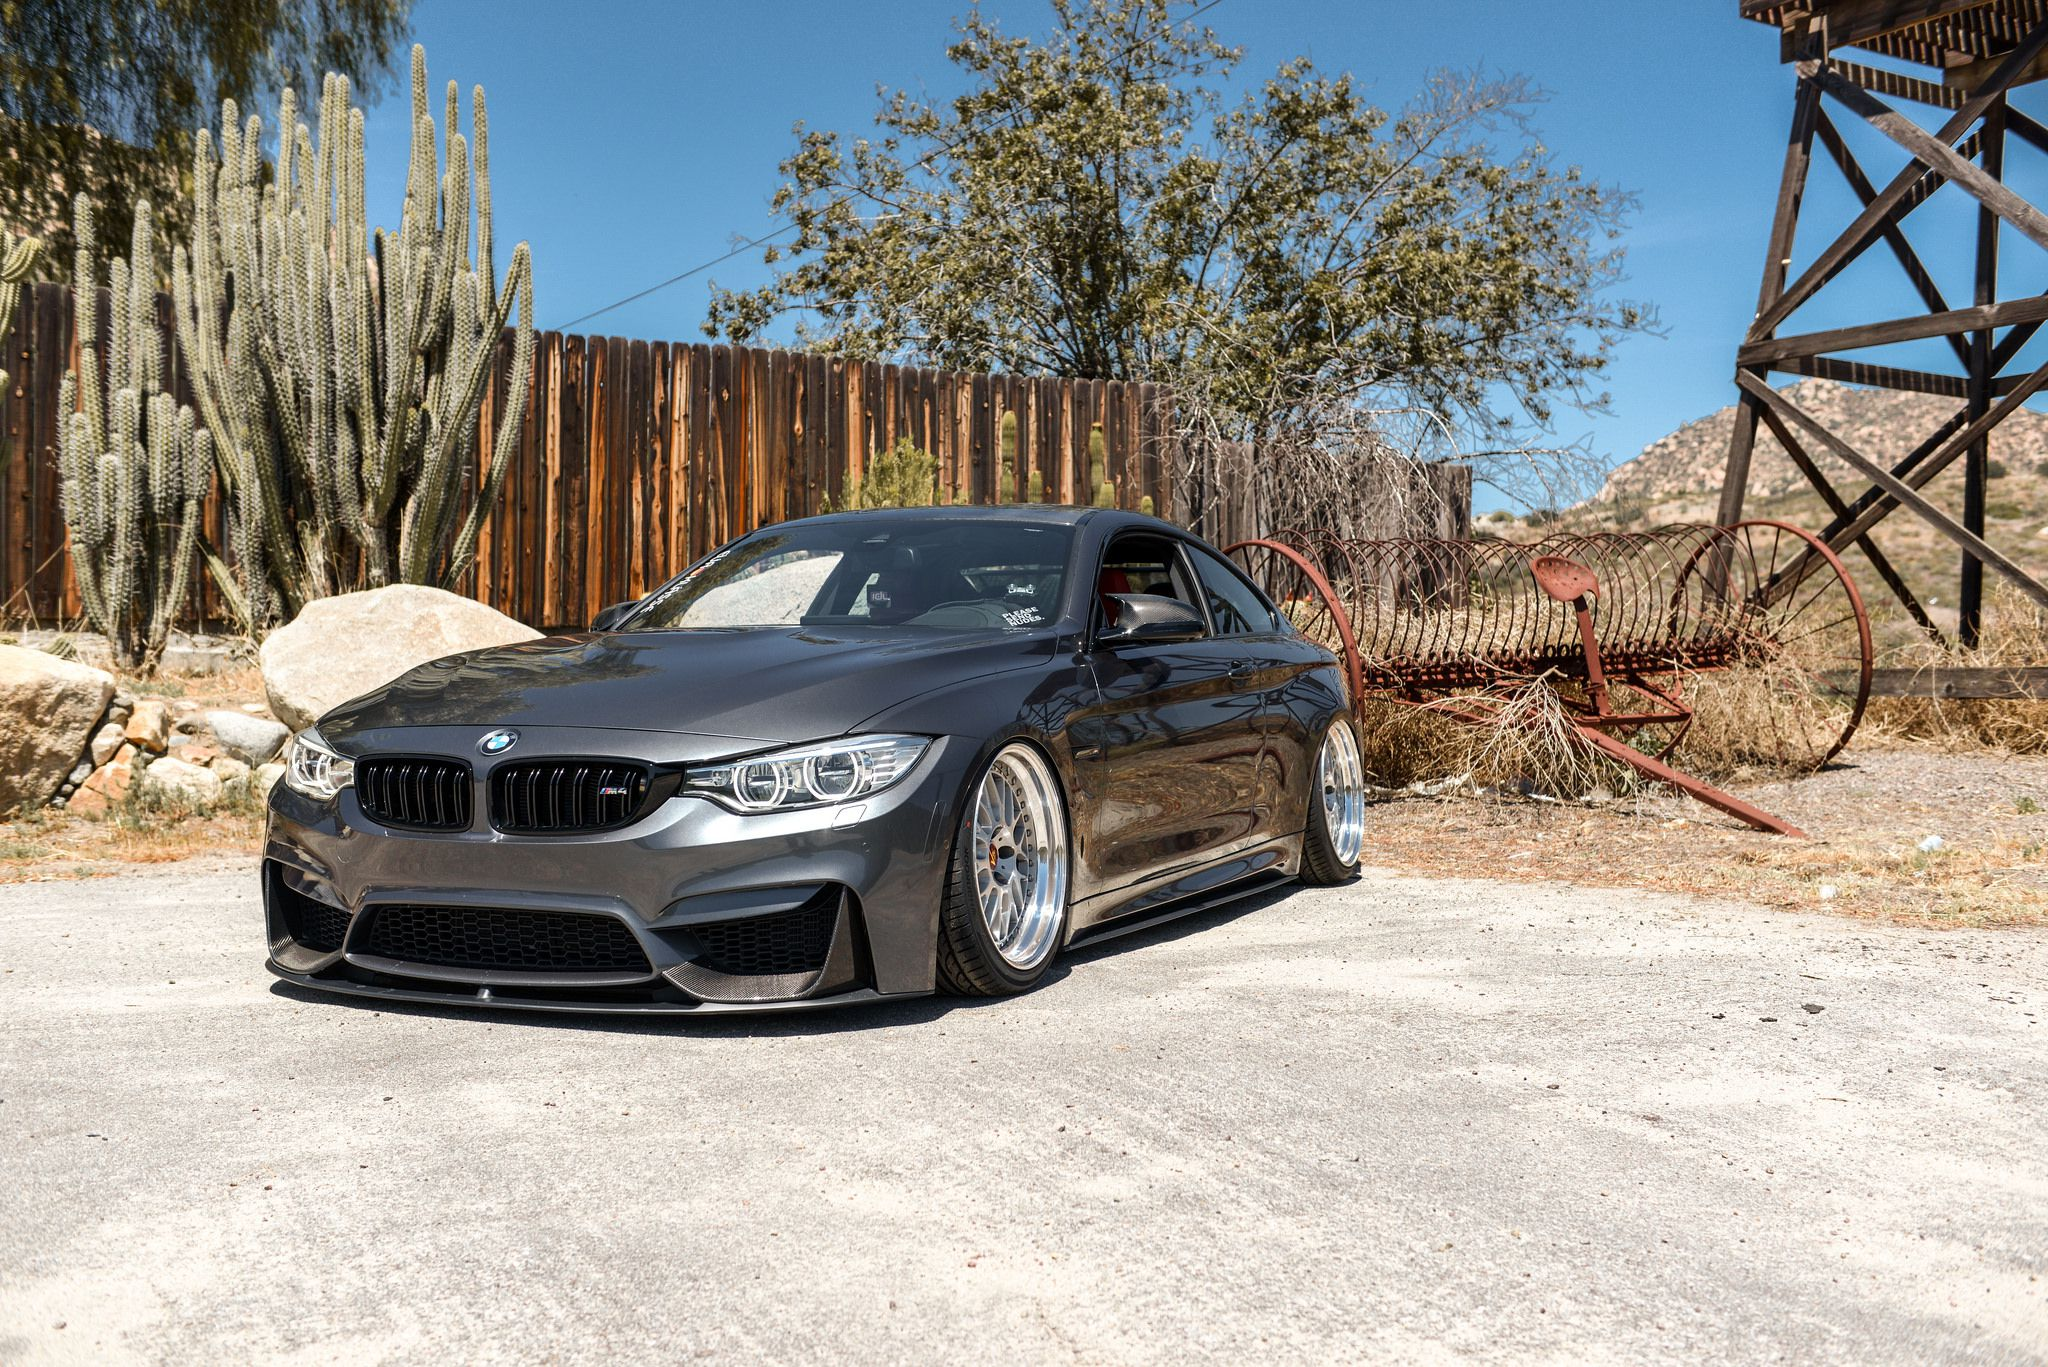 Sport coupe BMW M4 F82